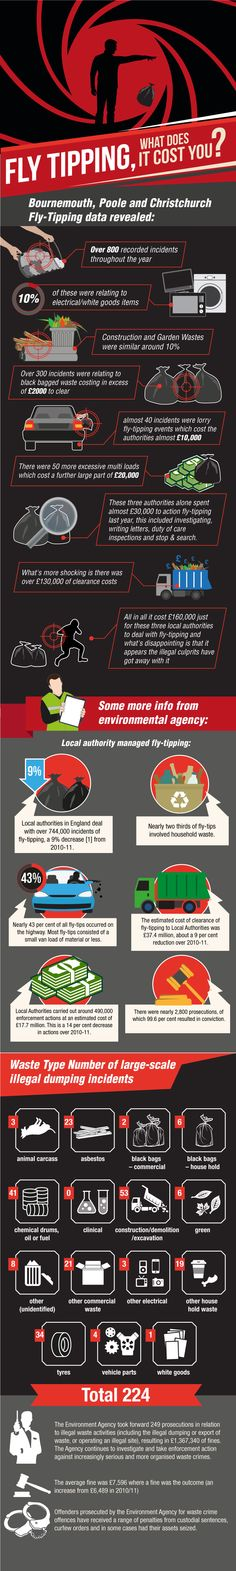 #infographics #flytipping #bournemouth #poole #christchurch #dorset